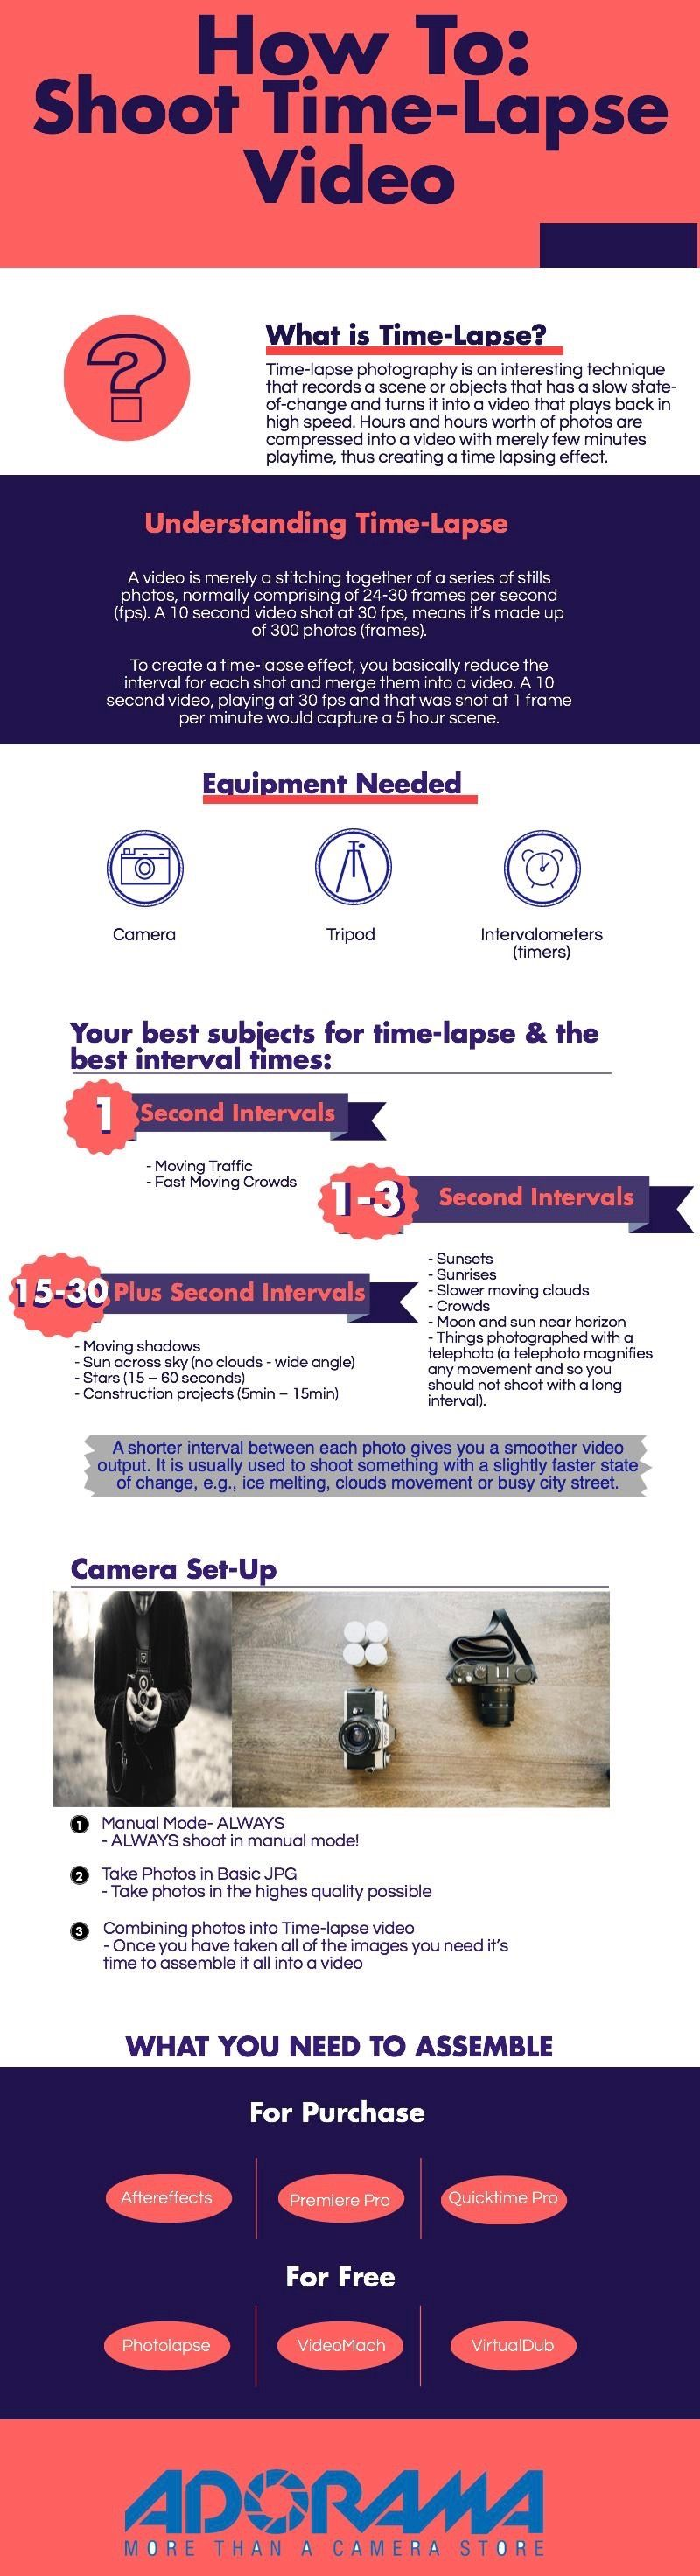 Best 25+ Time lapse film ideas only on Pinterest   Time lapse photo, Time lapse camera and Gopro